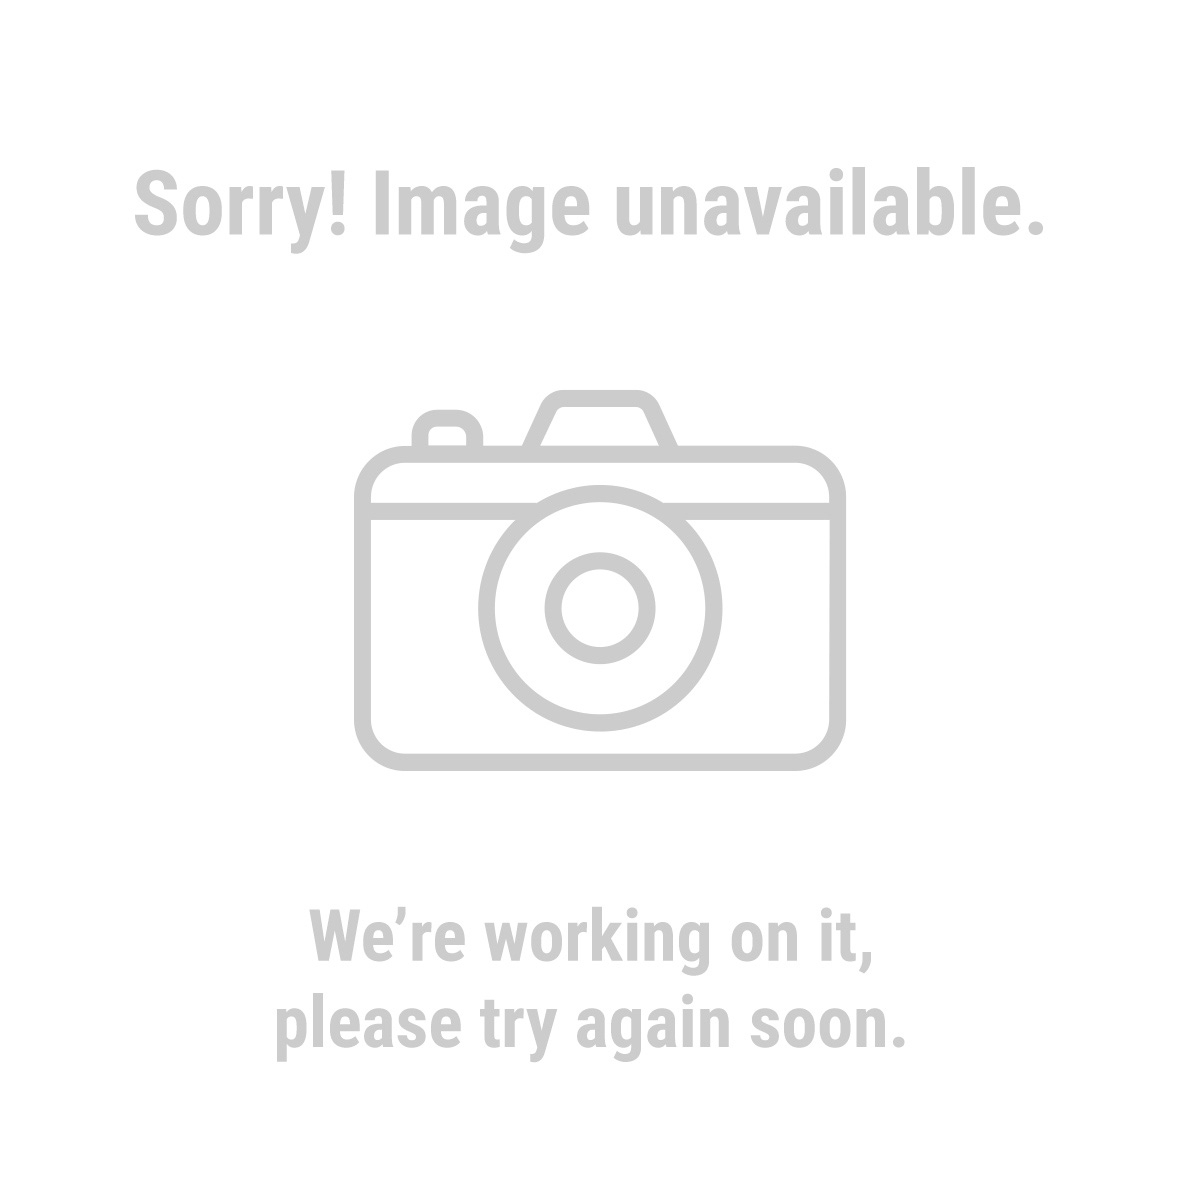 Western Safety 66374 Nylon Knit Gloves with Nitrile Palms, Large